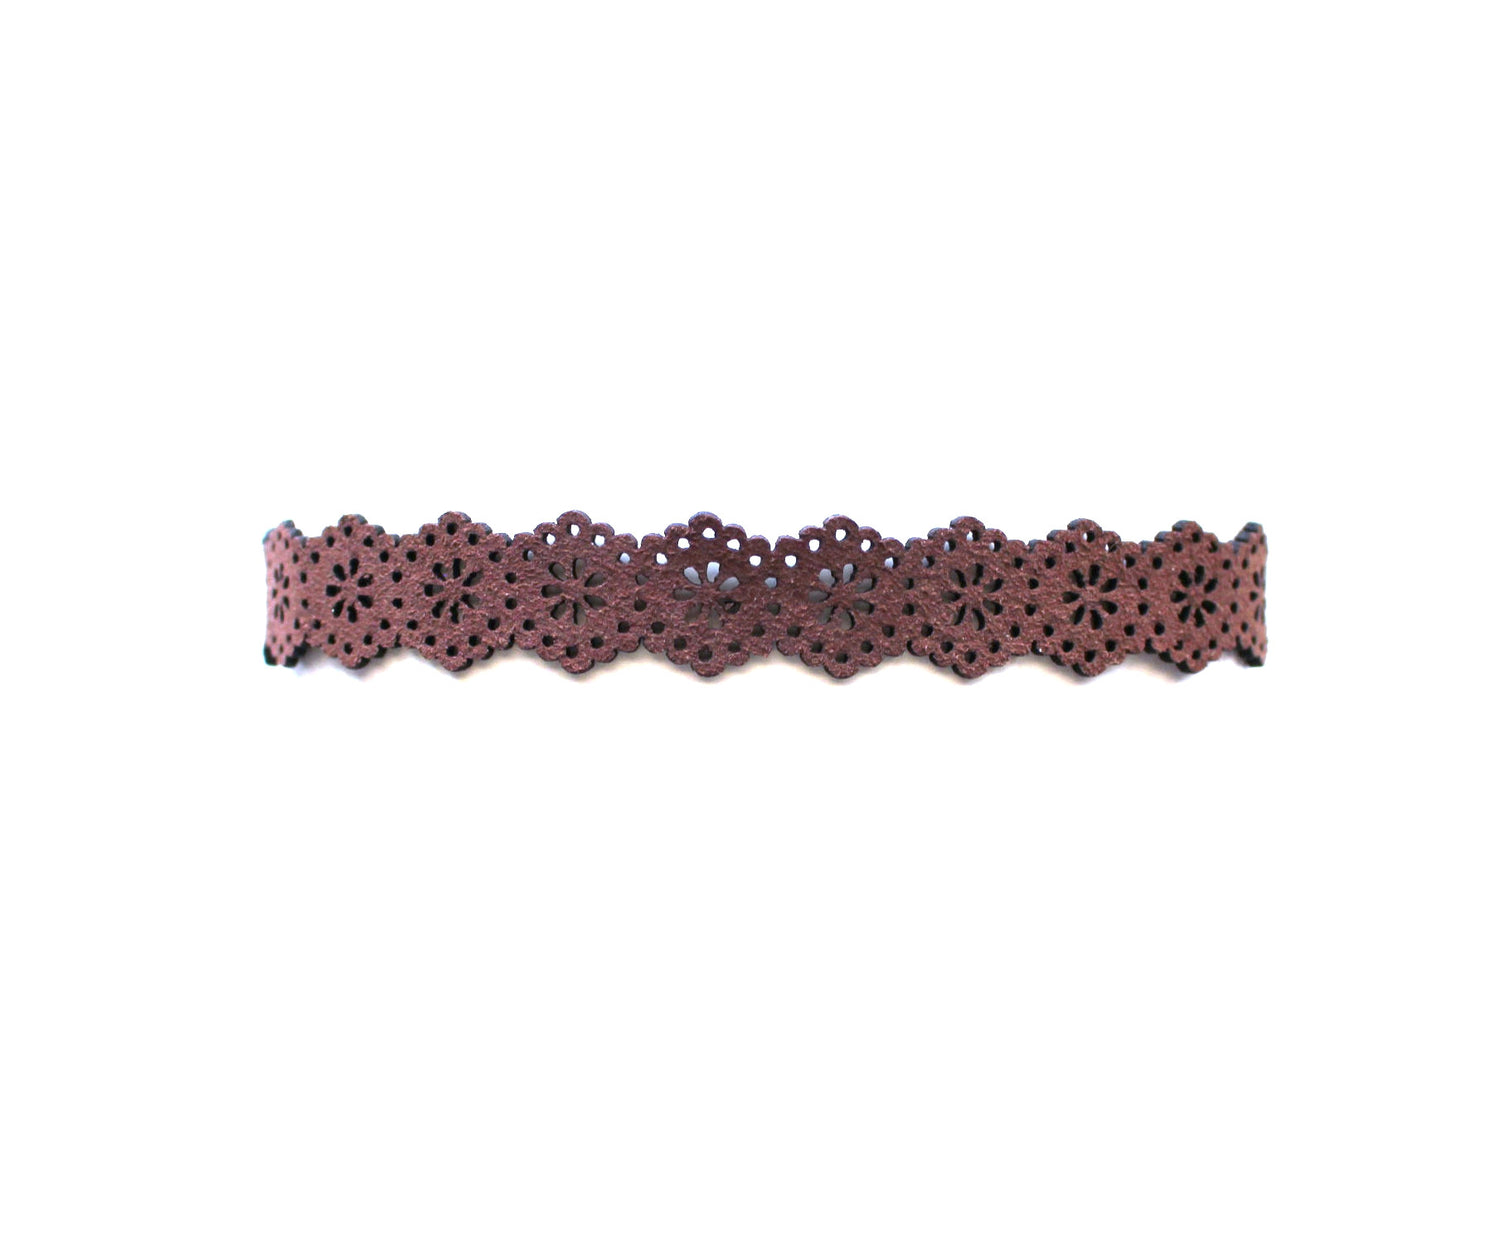 Floral Chic Choker Necklace- Brown